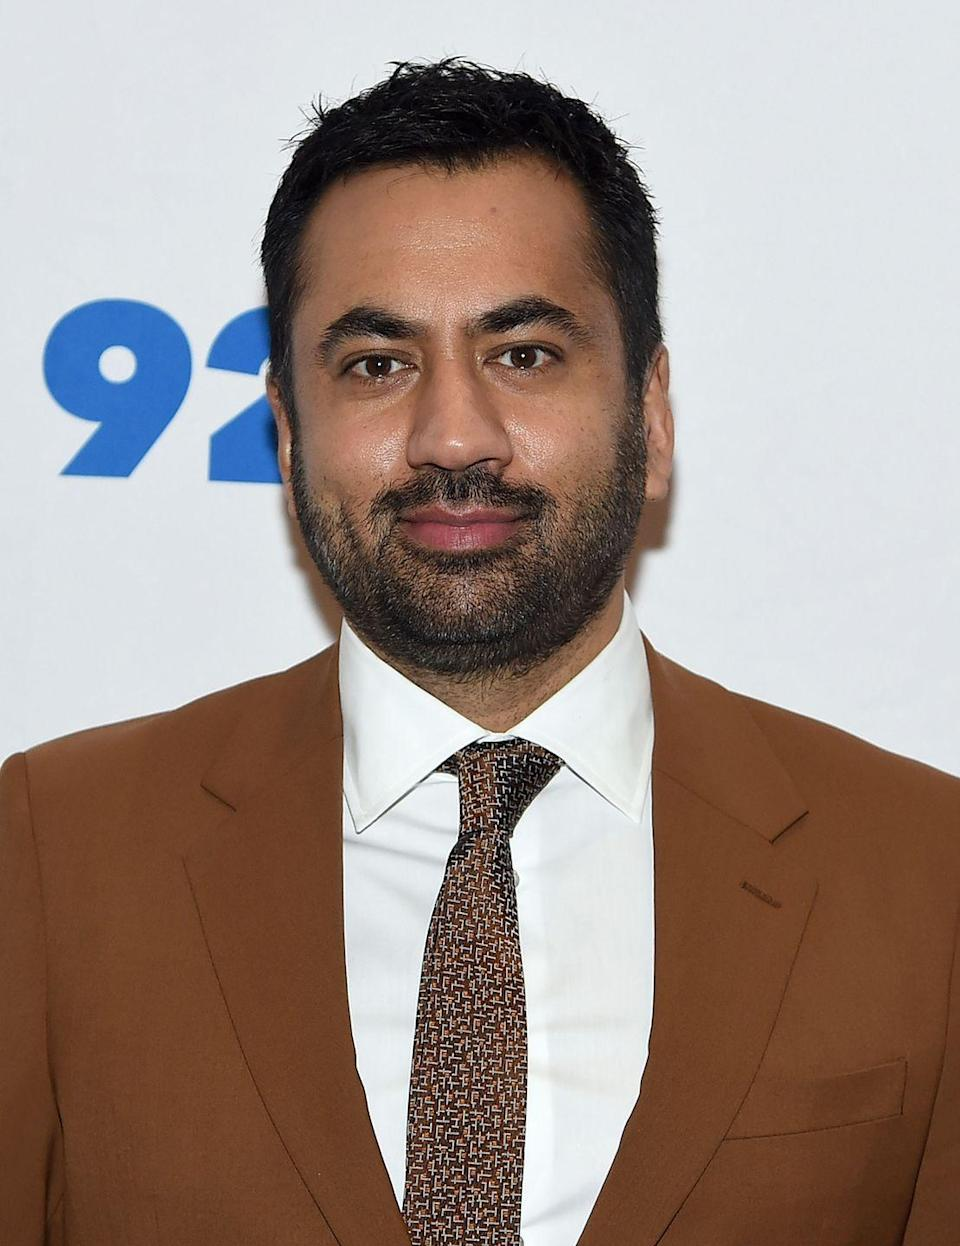 "<p>Kal Penn's departure from <em>House</em> was anything but ordinary. Instead of leaving for different roles or over contract negotiations, Penn was <a href=""https://www.washingtonpost.com/politics/kal-penn-from-white-castle-to-the-white-house/2012/09/04/4db74a0c-f6e8-11e1-8398-0327ab83ab91_story.html"" rel=""nofollow noopener"" target=""_blank"" data-ylk=""slk:offered a position in President Obama's administration"" class=""link rapid-noclick-resp"">offered a position in President Obama's administration</a>. The actor started his new career in the White House's Office of Public Liaison and Dr. Lawrence Kutner was killed off of the hit show in season 5.</p>"